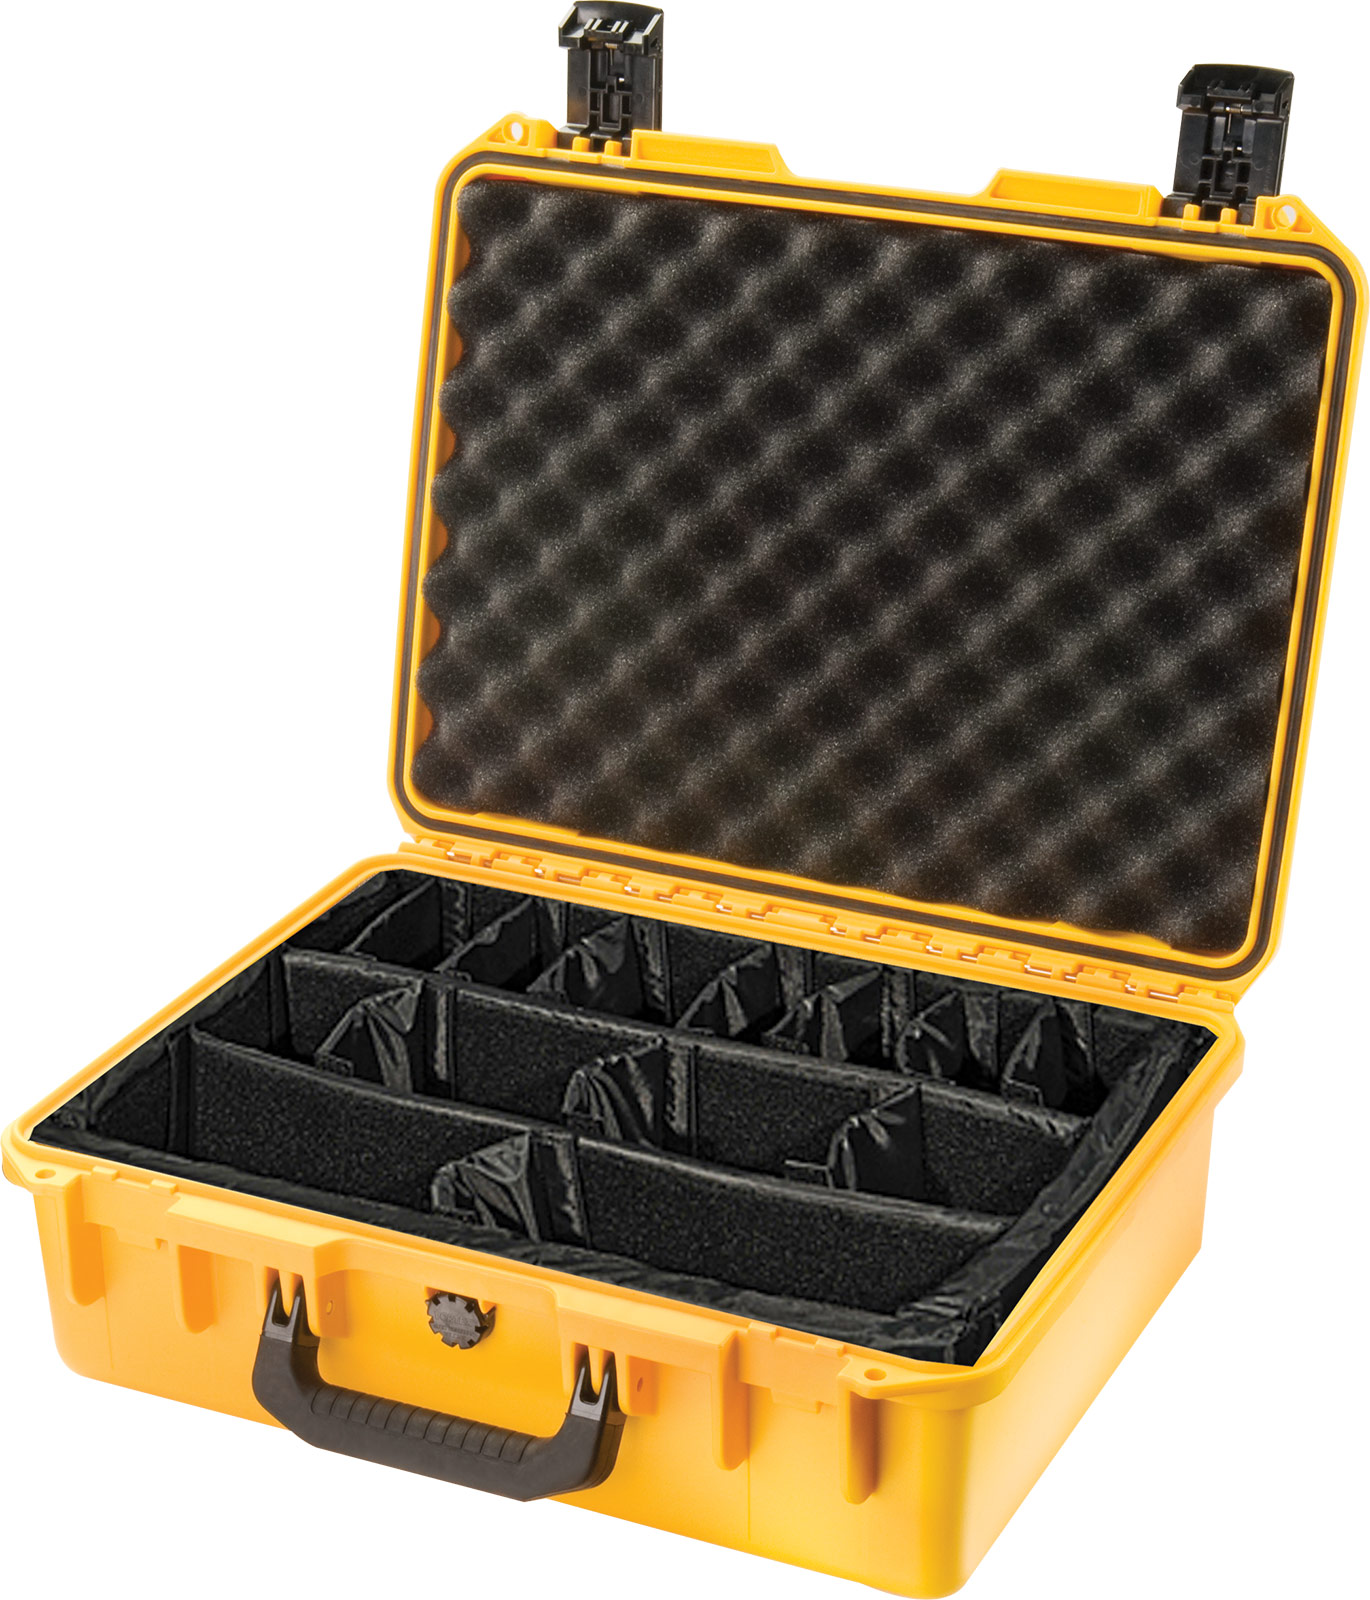 pelican im2400 yellow padded divider case